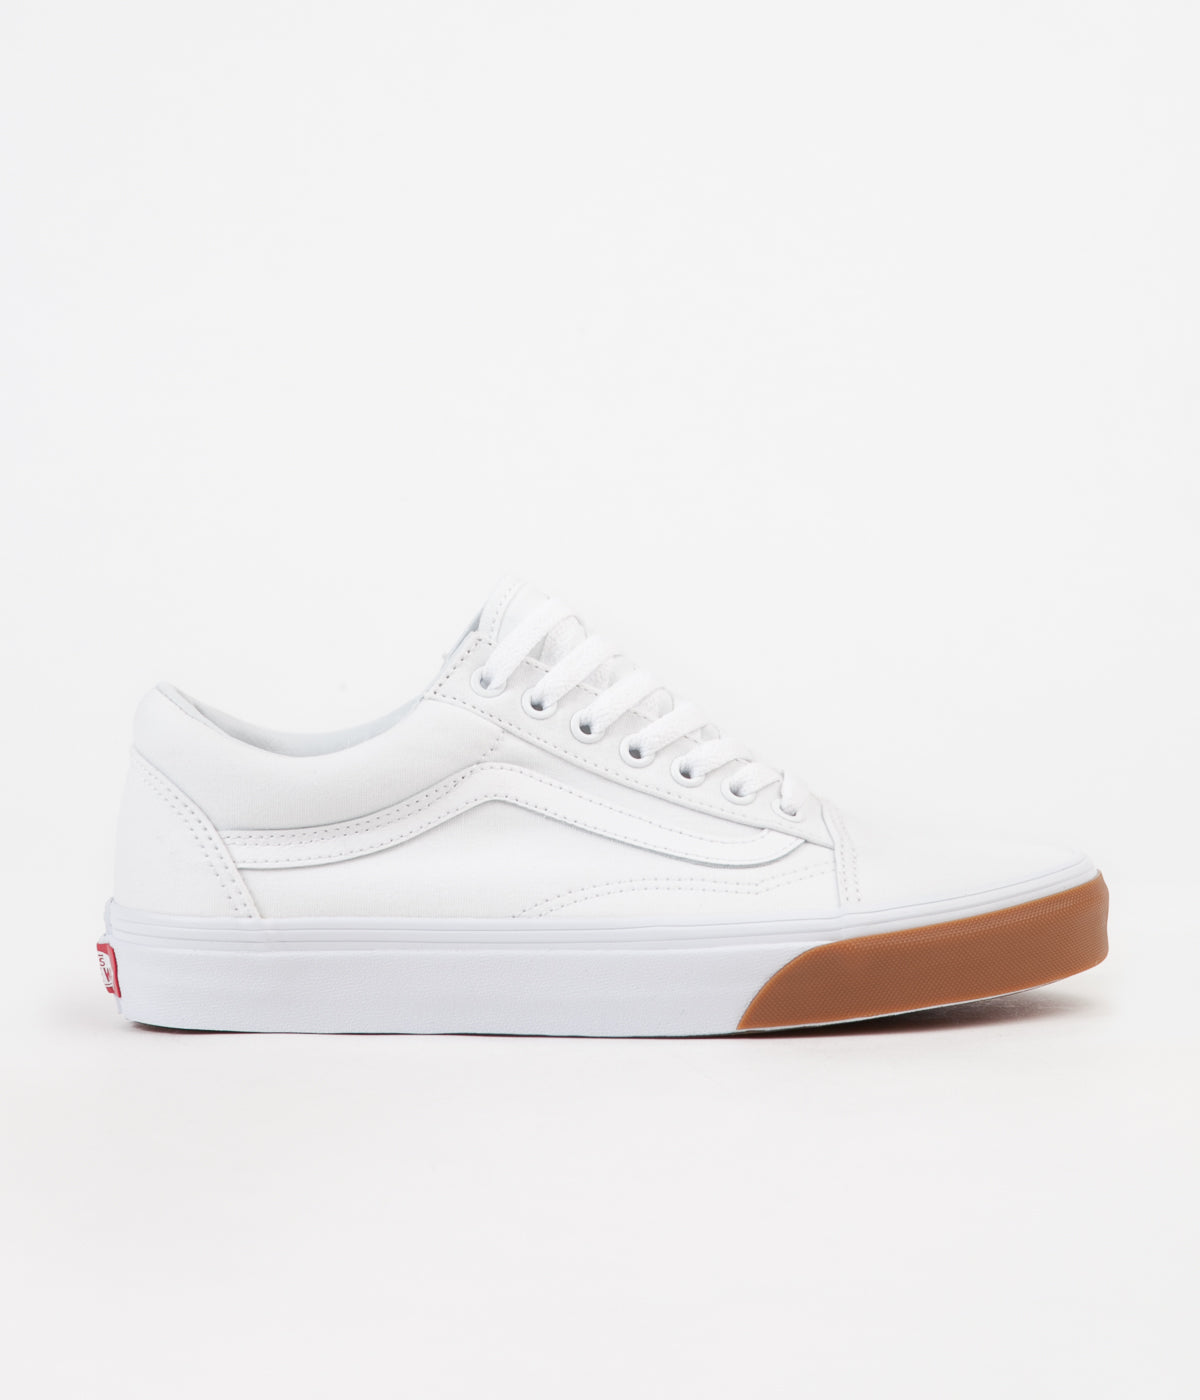 vans old skool gum bumper shoes true white true white. Black Bedroom Furniture Sets. Home Design Ideas